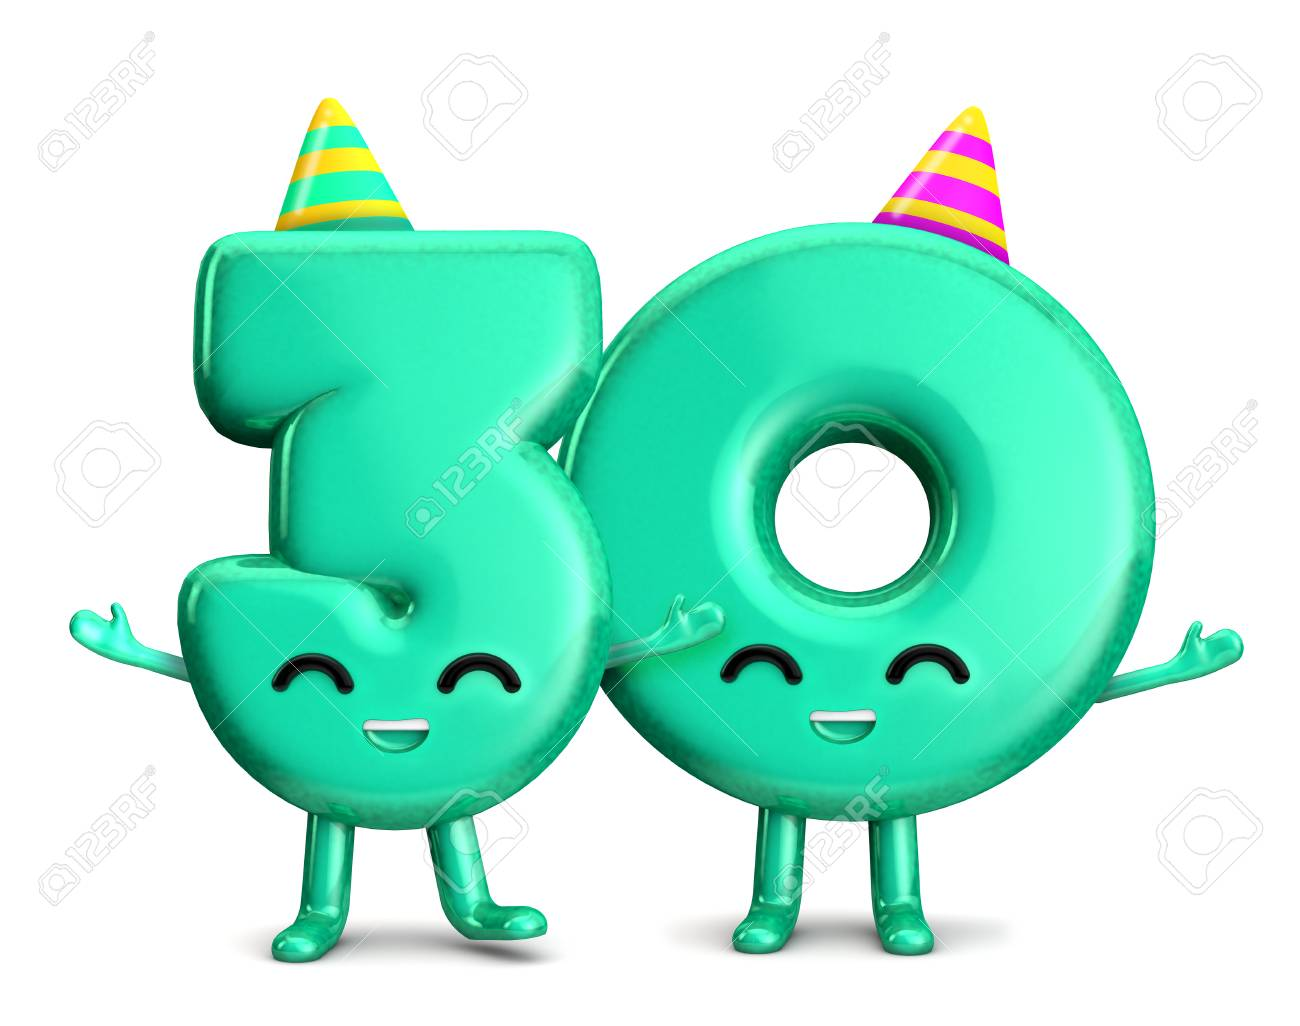 Happy 30th Birthday Cute Party Character With Hat 3D Rendering Stock Photo